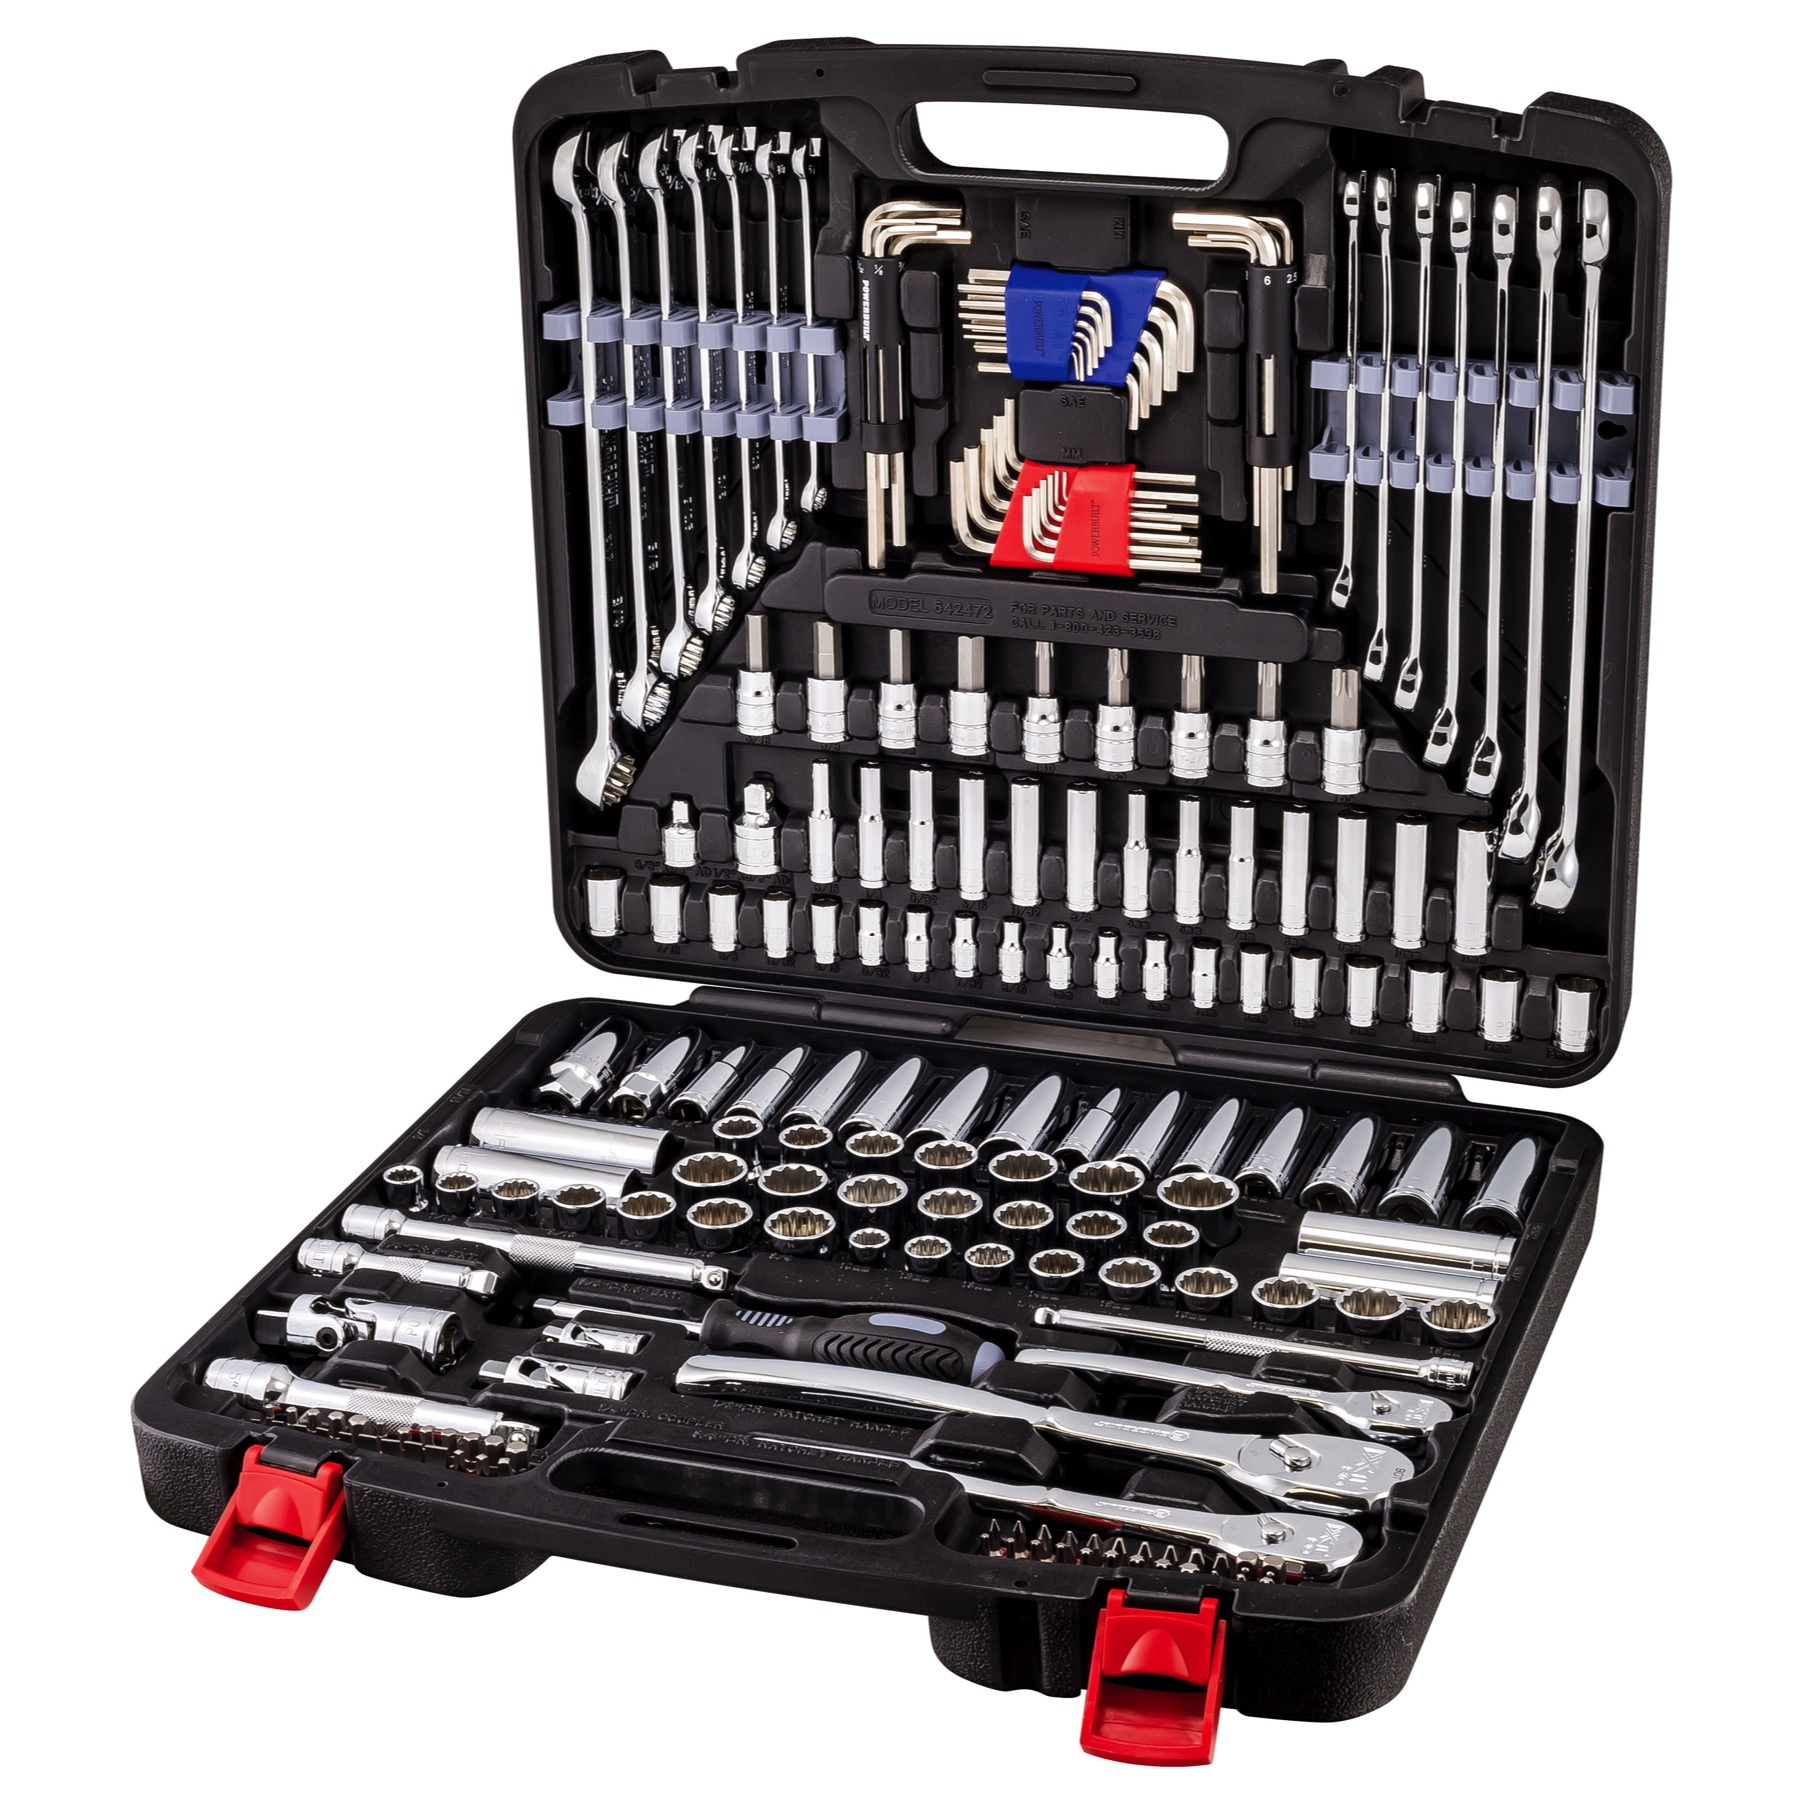 642452 Powerbuilt 80 Piece Auto Mechanic/'s Service Tool Set